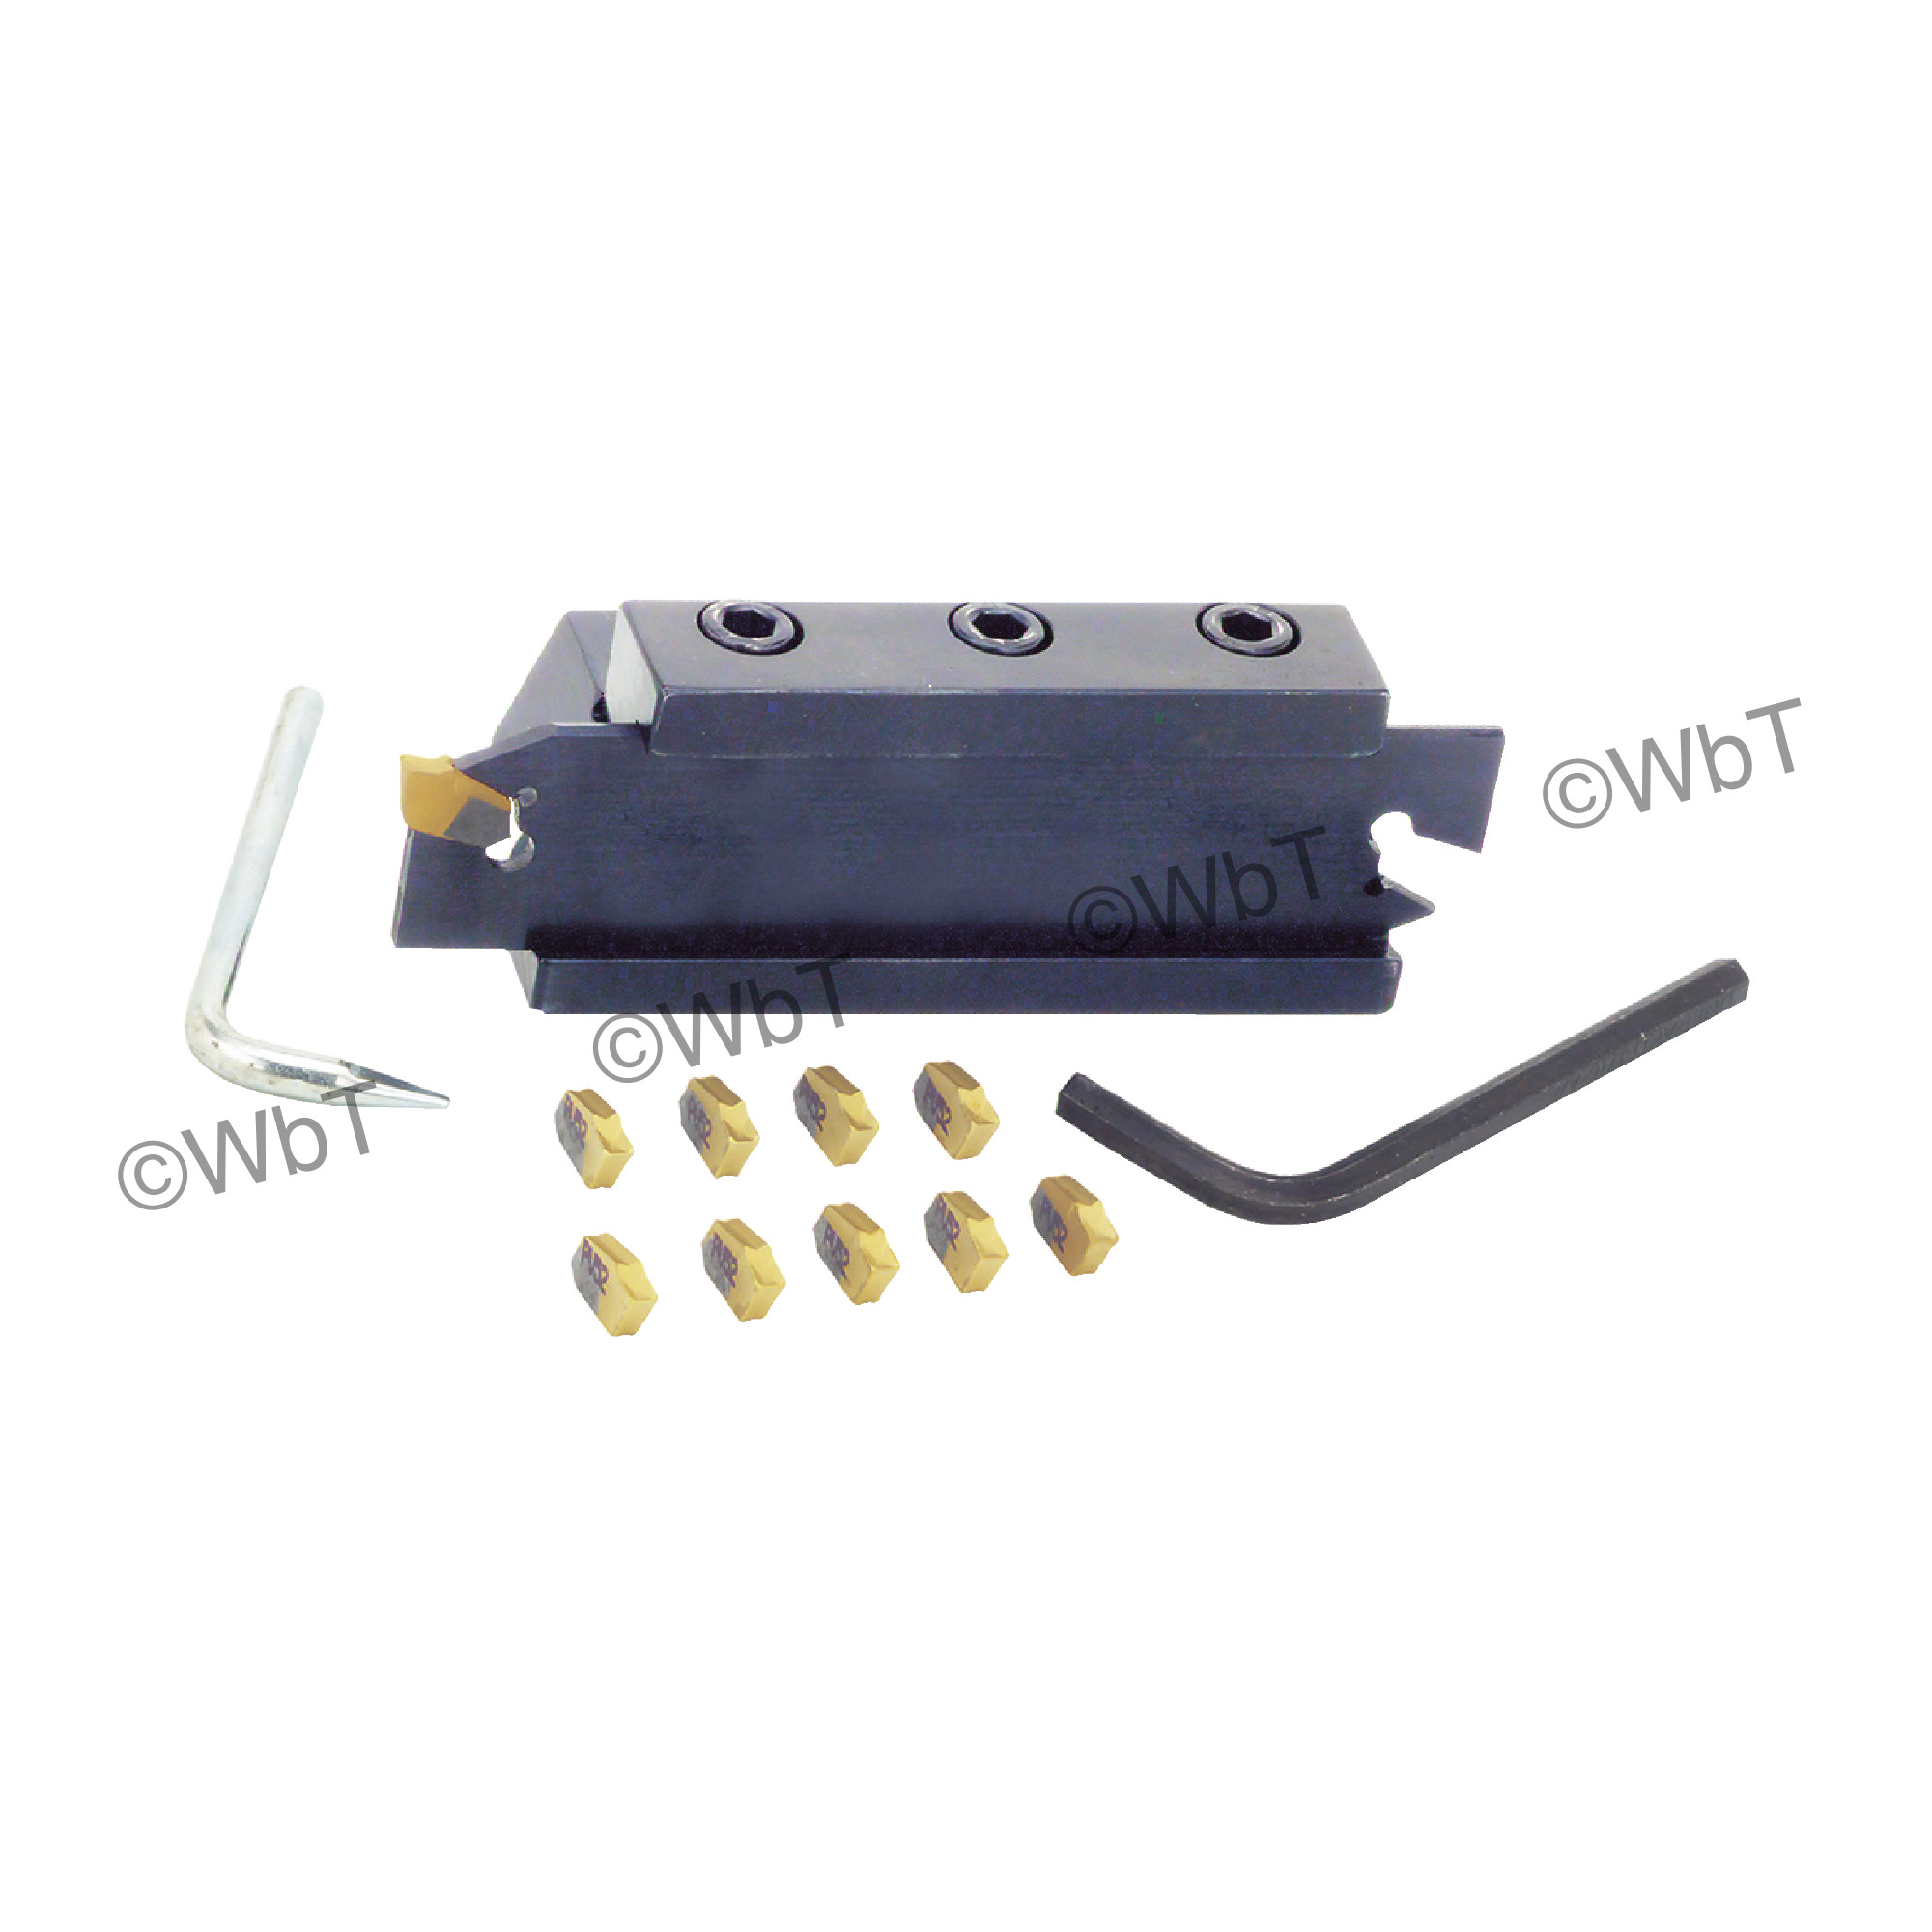 """TTC PRODUCTION - NCO-4 5/8"""" Blade Block Set / 5/8"""" X 5/8"""" Shank / For 1.0"""" (26mm) Height Blades / With (10) TGTN-3-C5PV"""